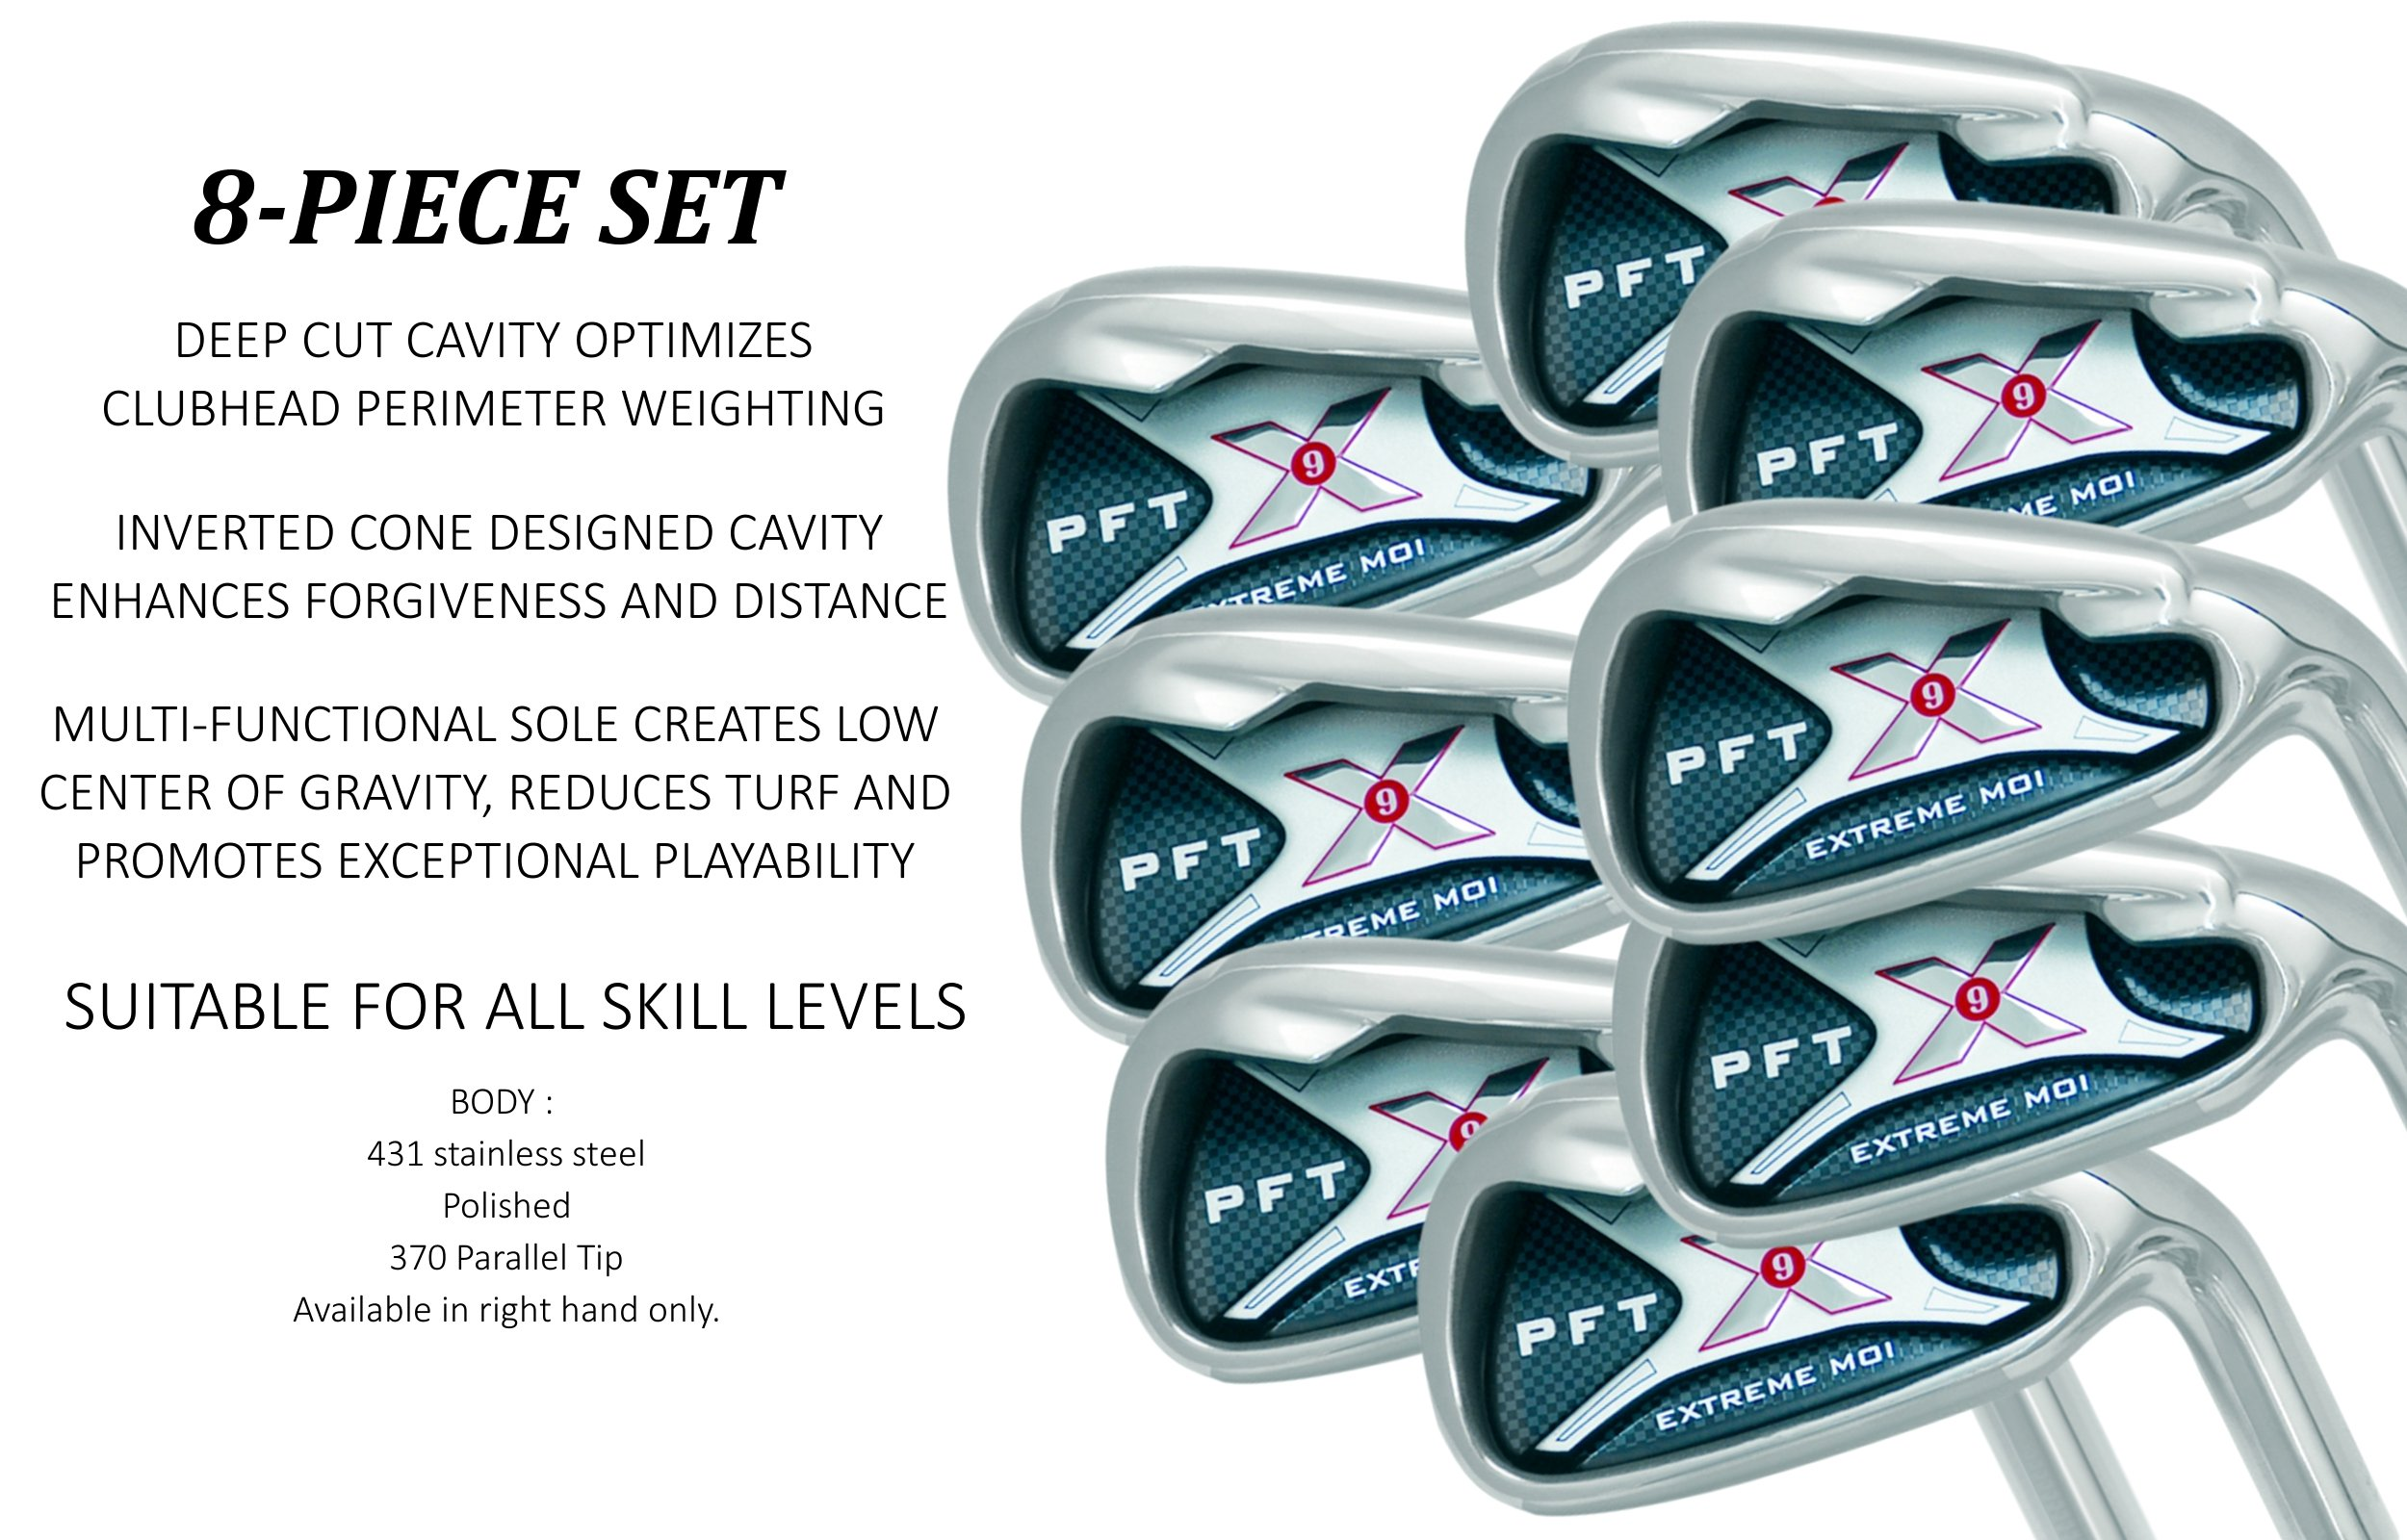 PFT X9 High Moi Extreme 9 Iron Set Golf Clubs Custom Made Right Hand Stiff S Flex Steel Shafts Complete Mens Irons Ultra Forgiving OS Oversized Wide Sole Ibrid Club by PFT X9 (Image #1)